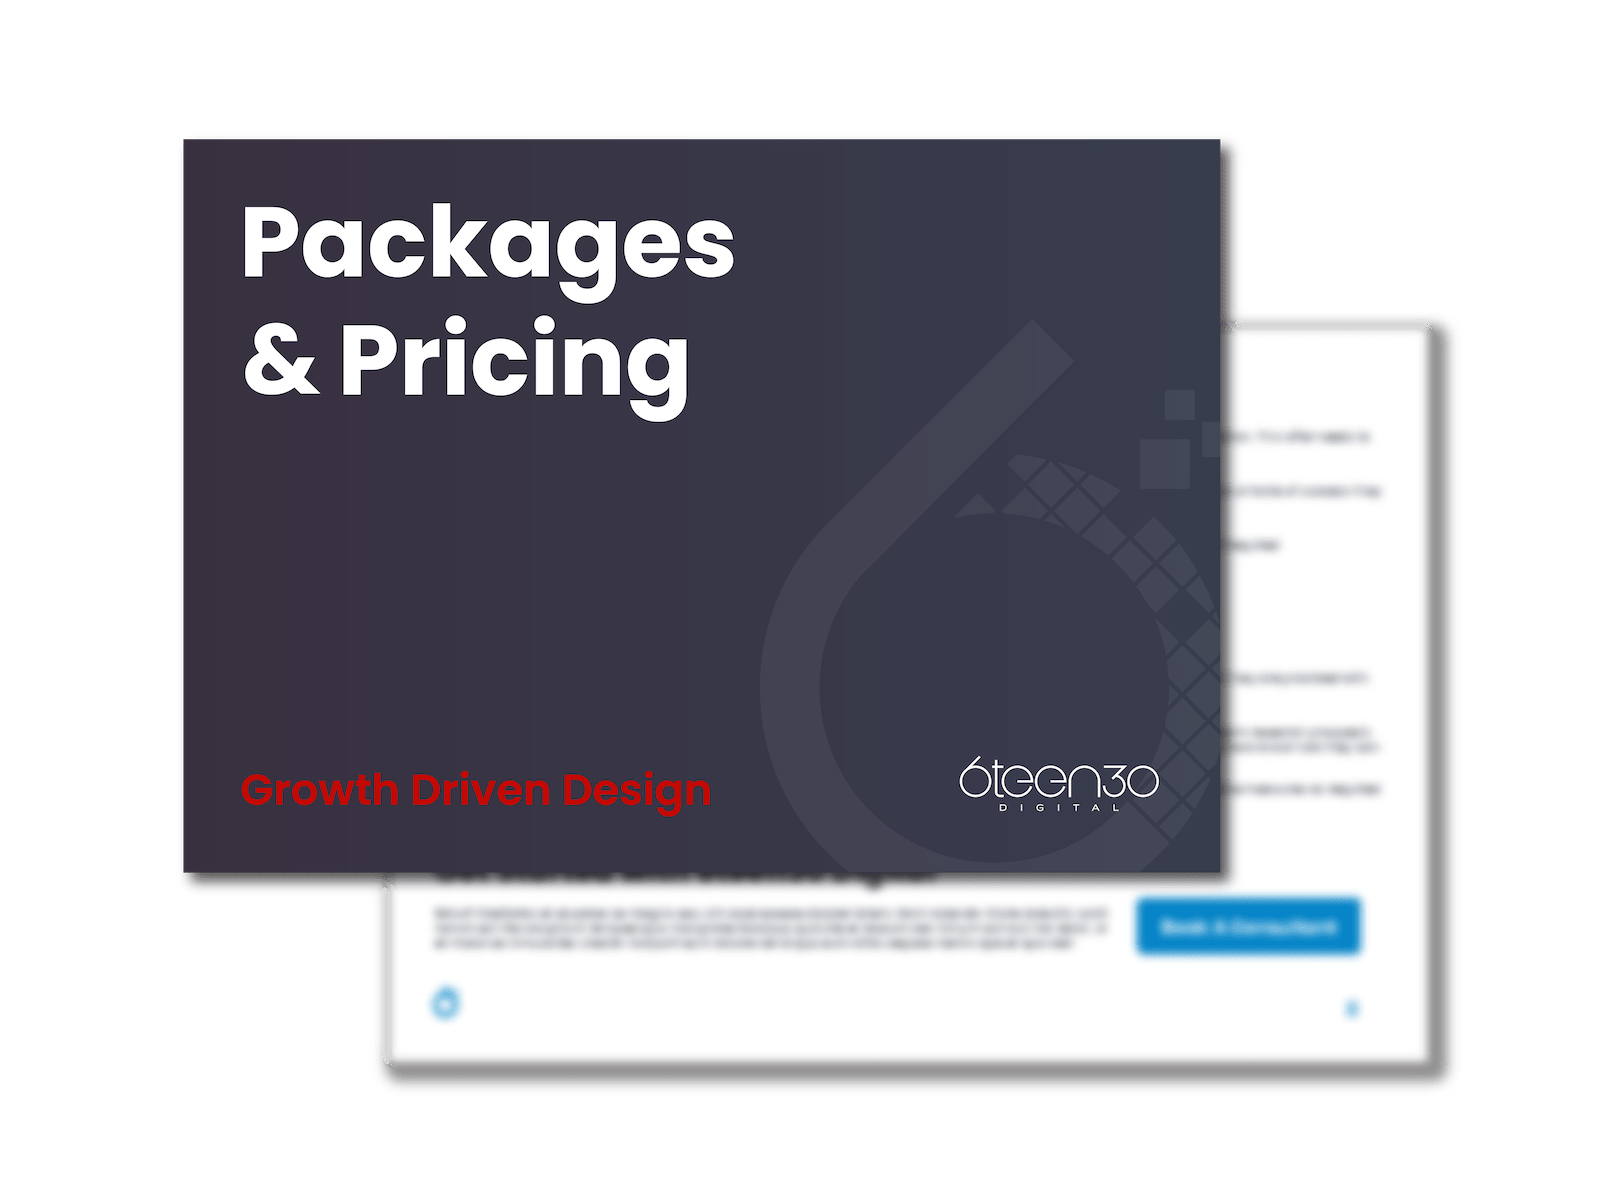 6teen30 Digital - Growth Driven Design - Pricing And Packages